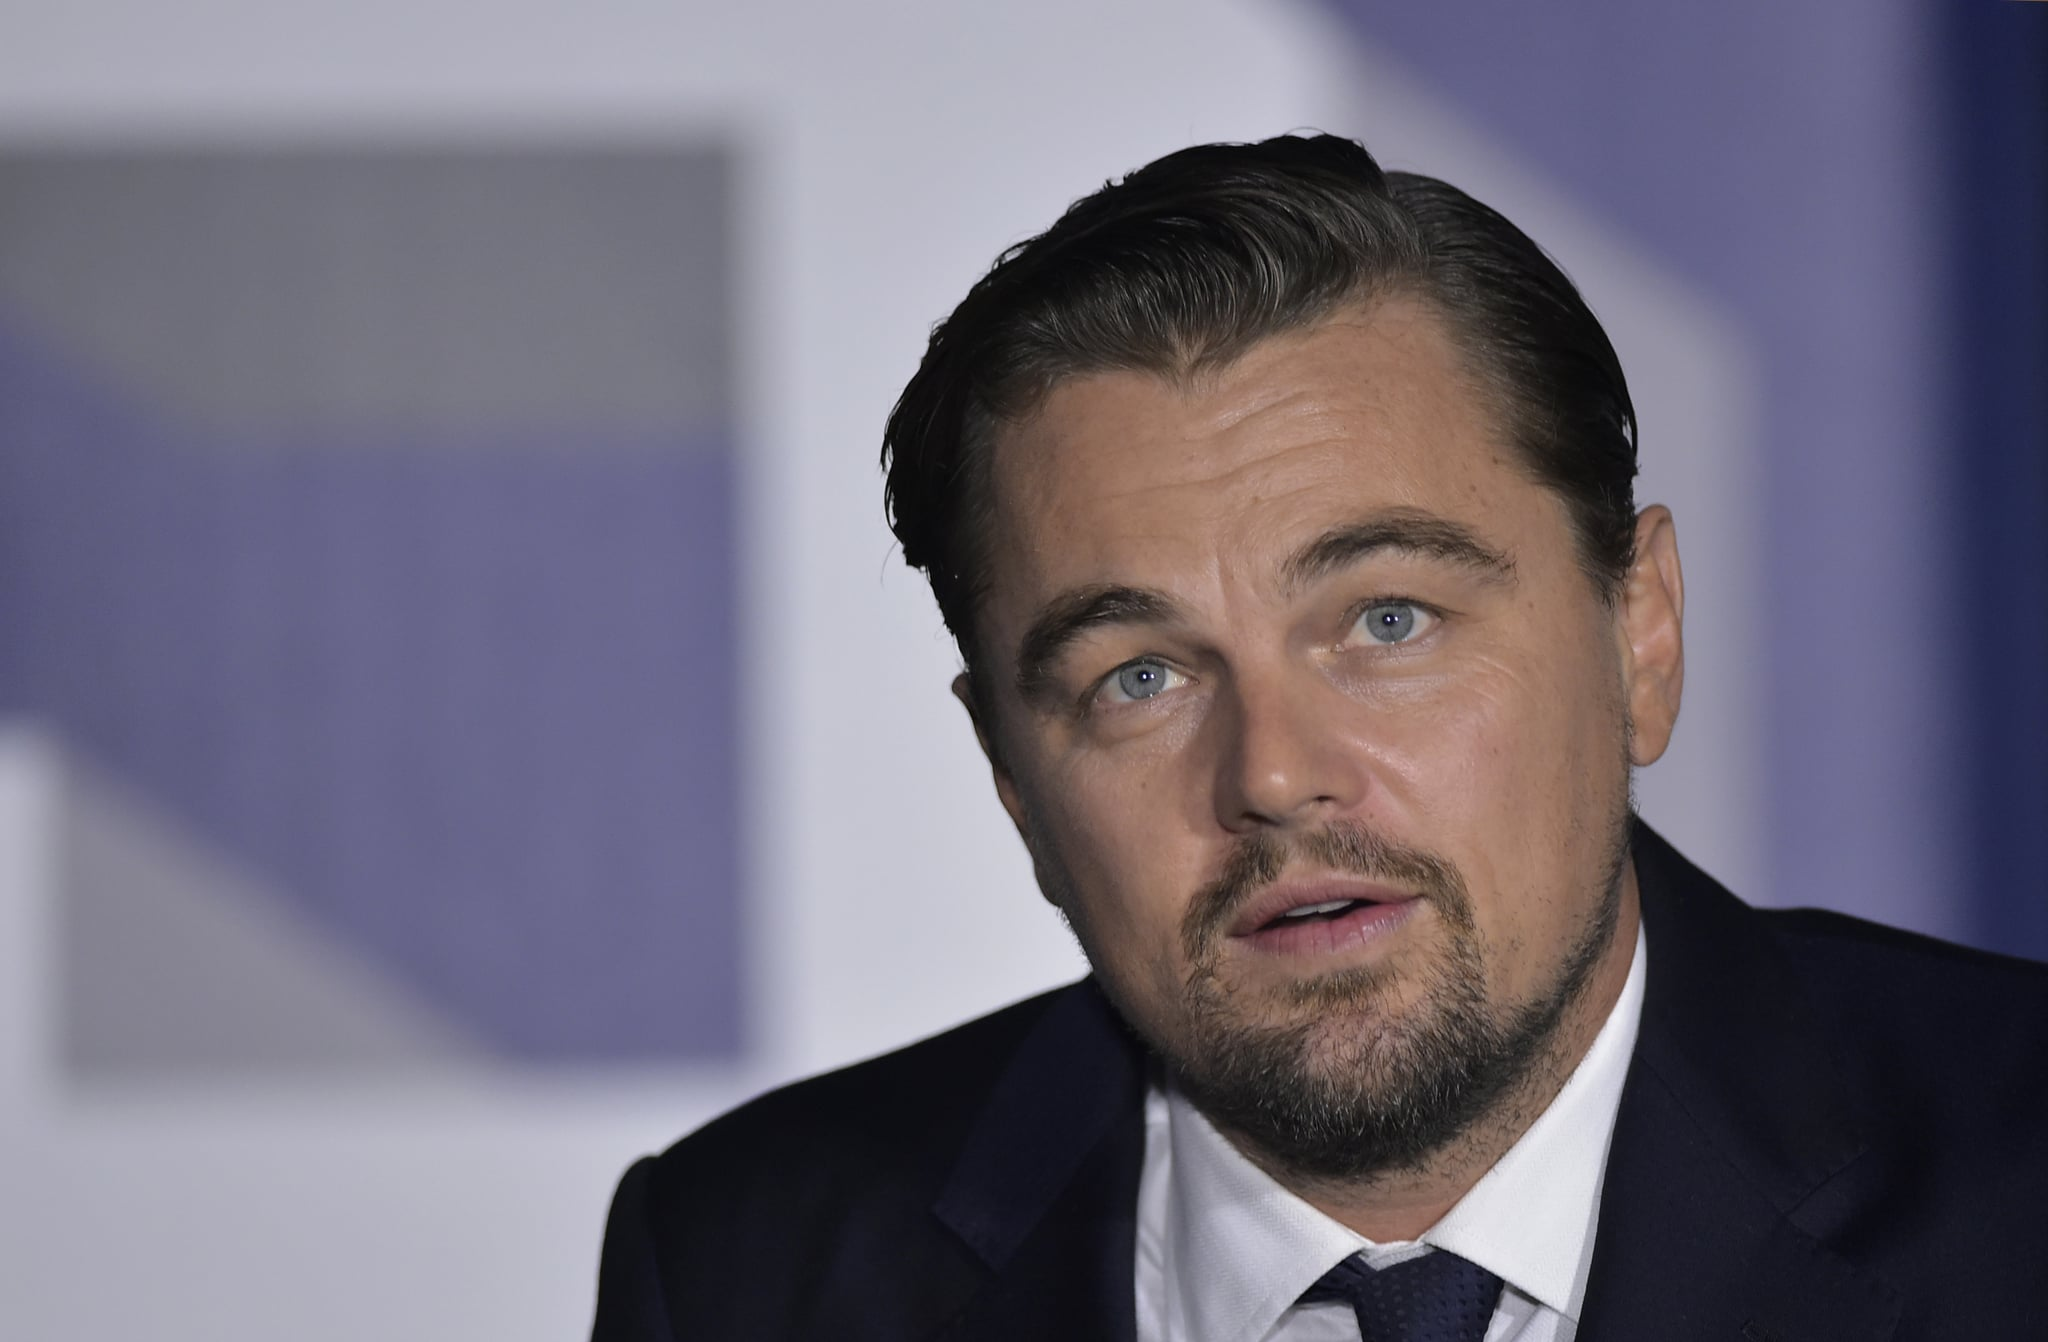 Leonardo DiCaprio Drops $20 Million, Becomes Earth's Biggest Defender